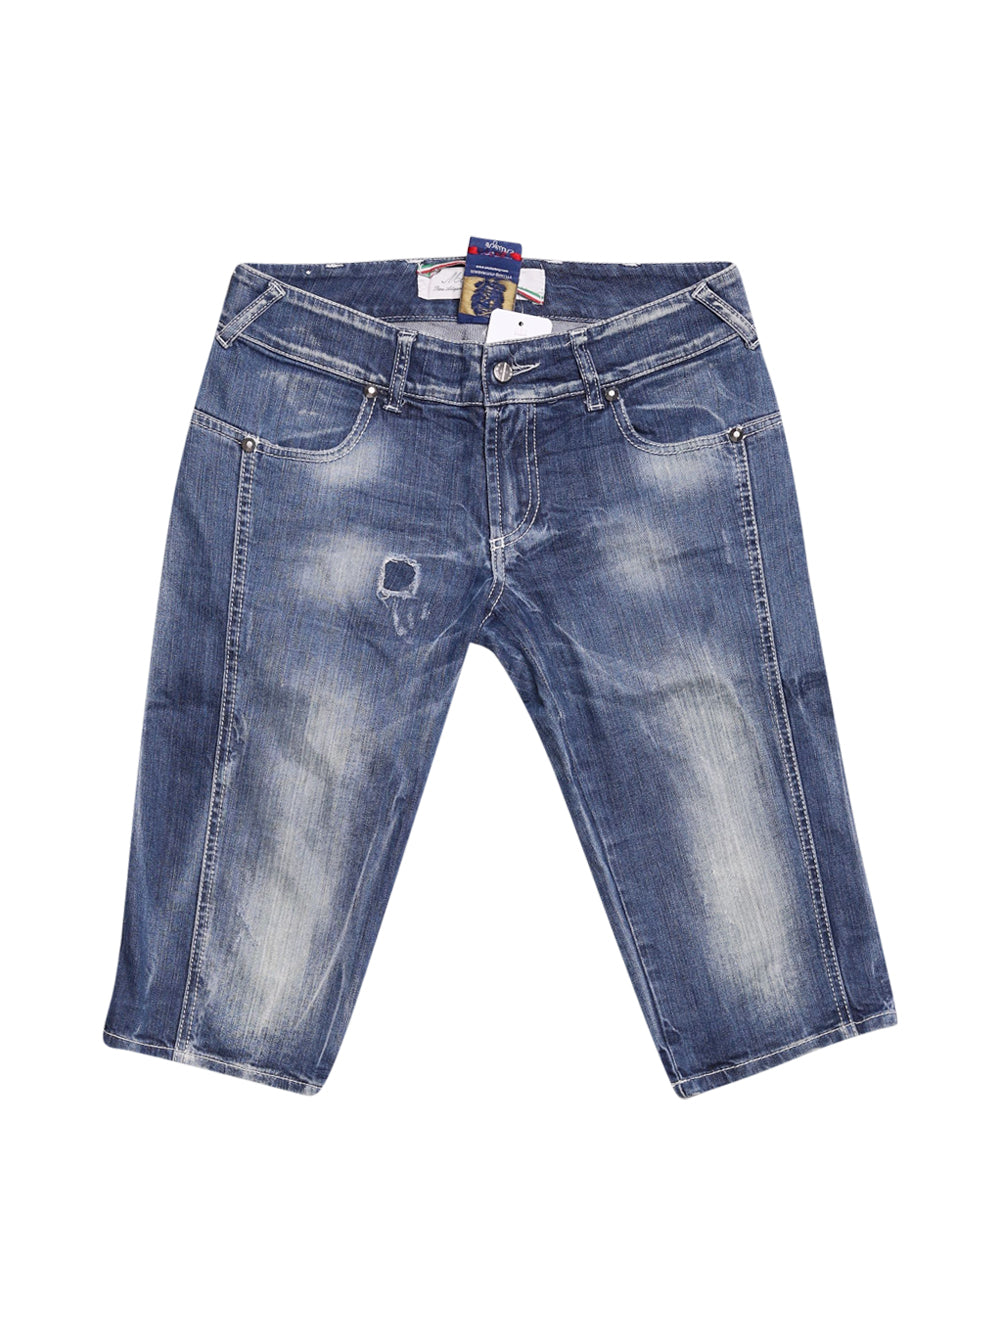 Front photo of Preloved met in jeans Blue Man's shorts - size 32/XXS